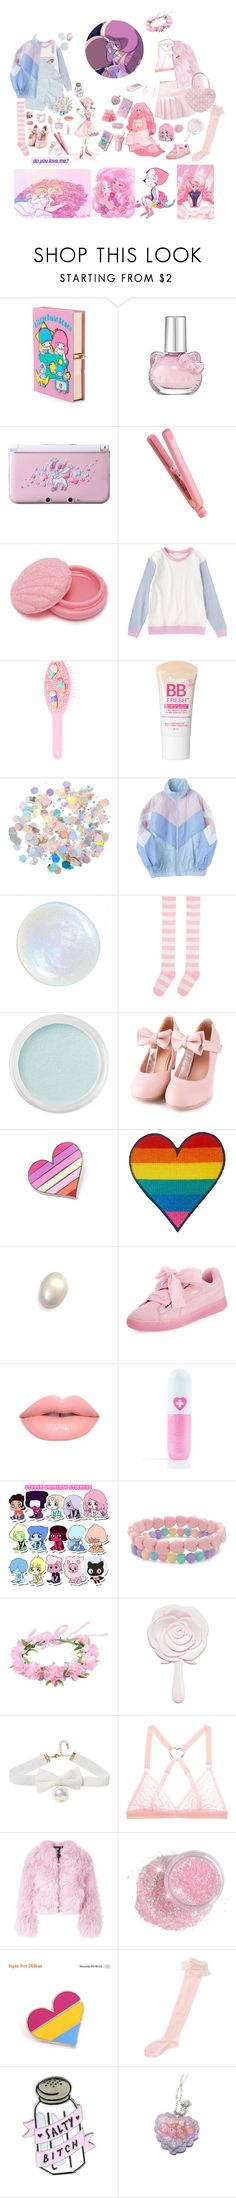 """Salty angery lesbian and her fluffy girlfriend"" by crimson-crow ❤ liked on Polyvore featuring Olympia Le-Tan, Hello Kitty, Nintendo, FHI Heat, Fujifilm, Forever 21, claire's, Maybelline, Bare Escentuals and Puma"